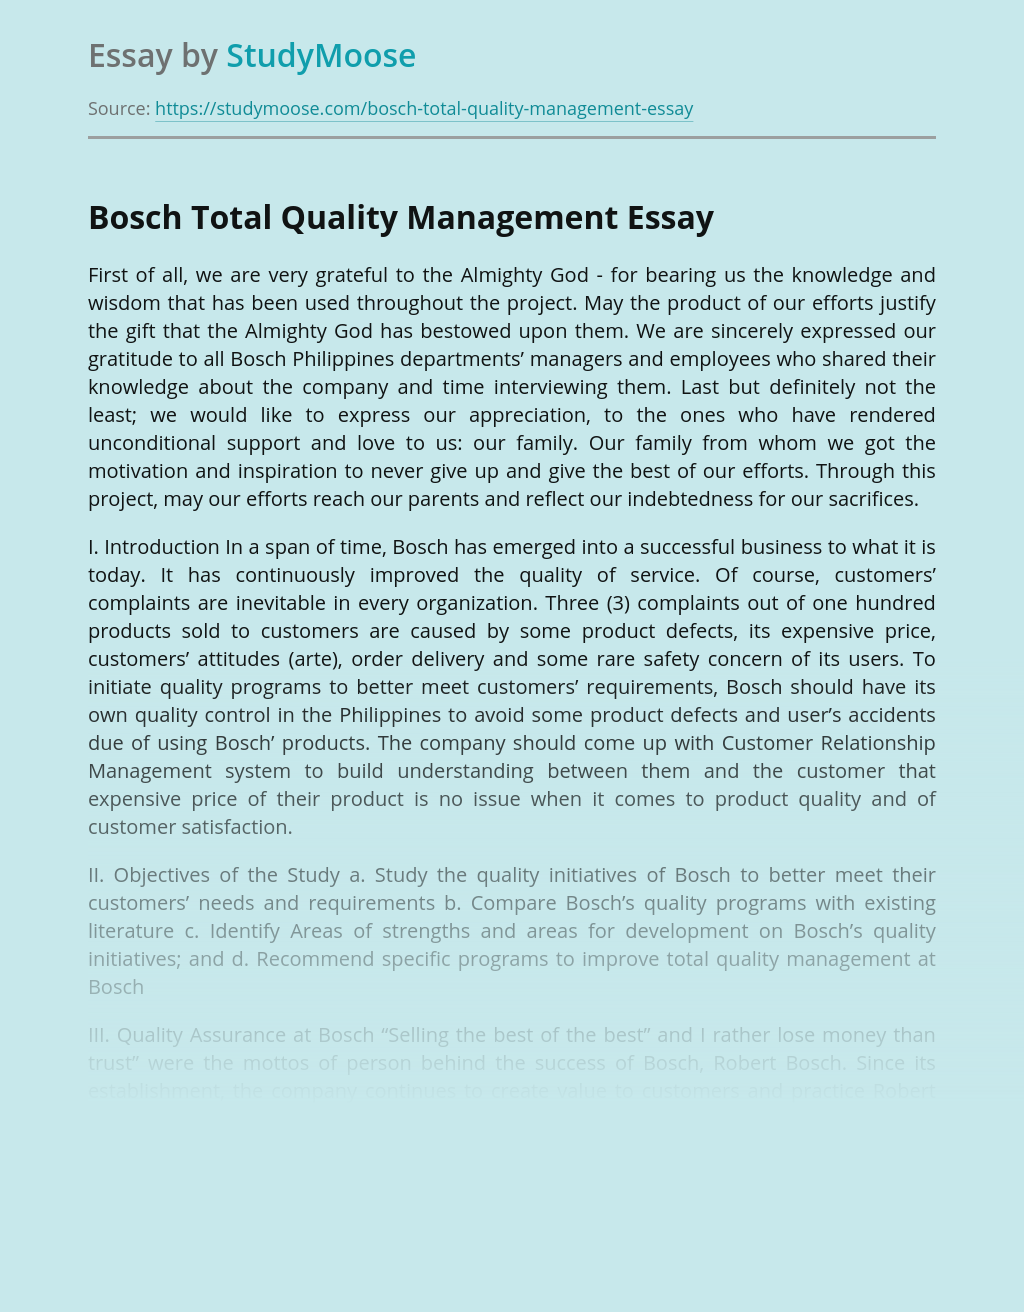 Bosch Total Quality Management